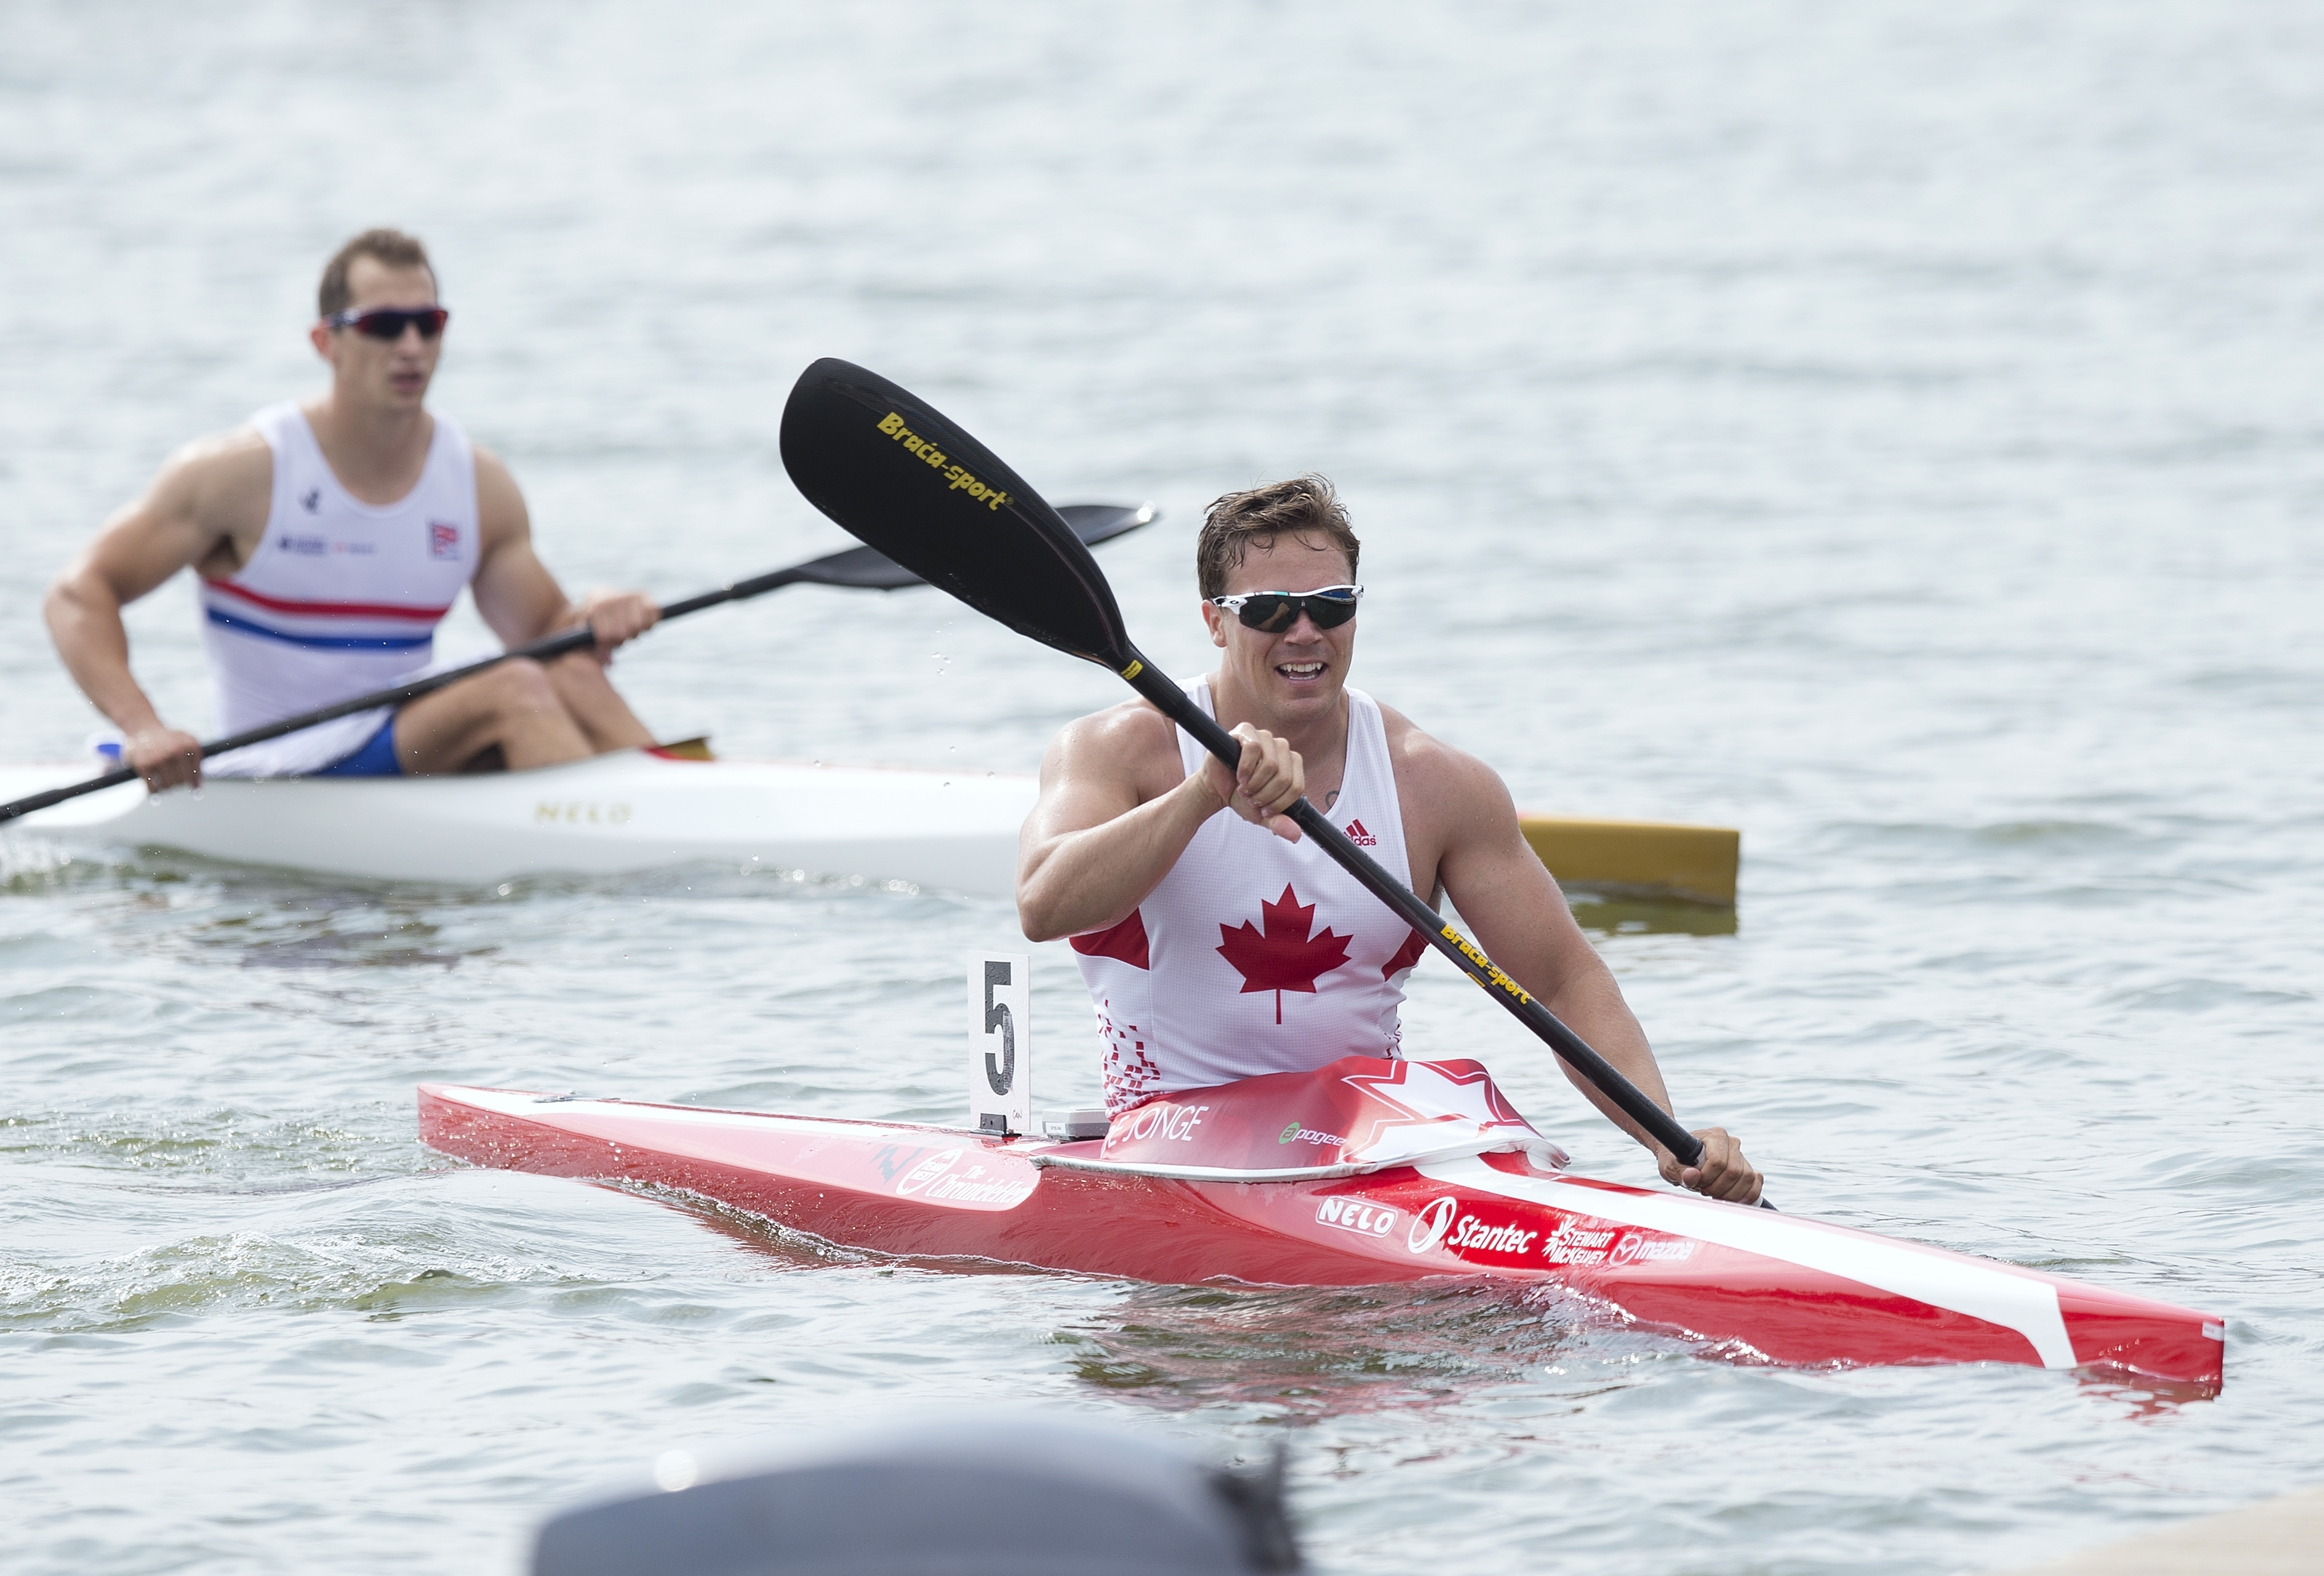 FILE - In this Aug. 10, 2014, file photo, Canada's Mark De Jonge, right, rides his canoe after winning at the K1 men 200m final of the ICF Canoe Sprint World Championships 2014 in Moscow, Russia. After winning bronze in London, the 32-year-old engineer he